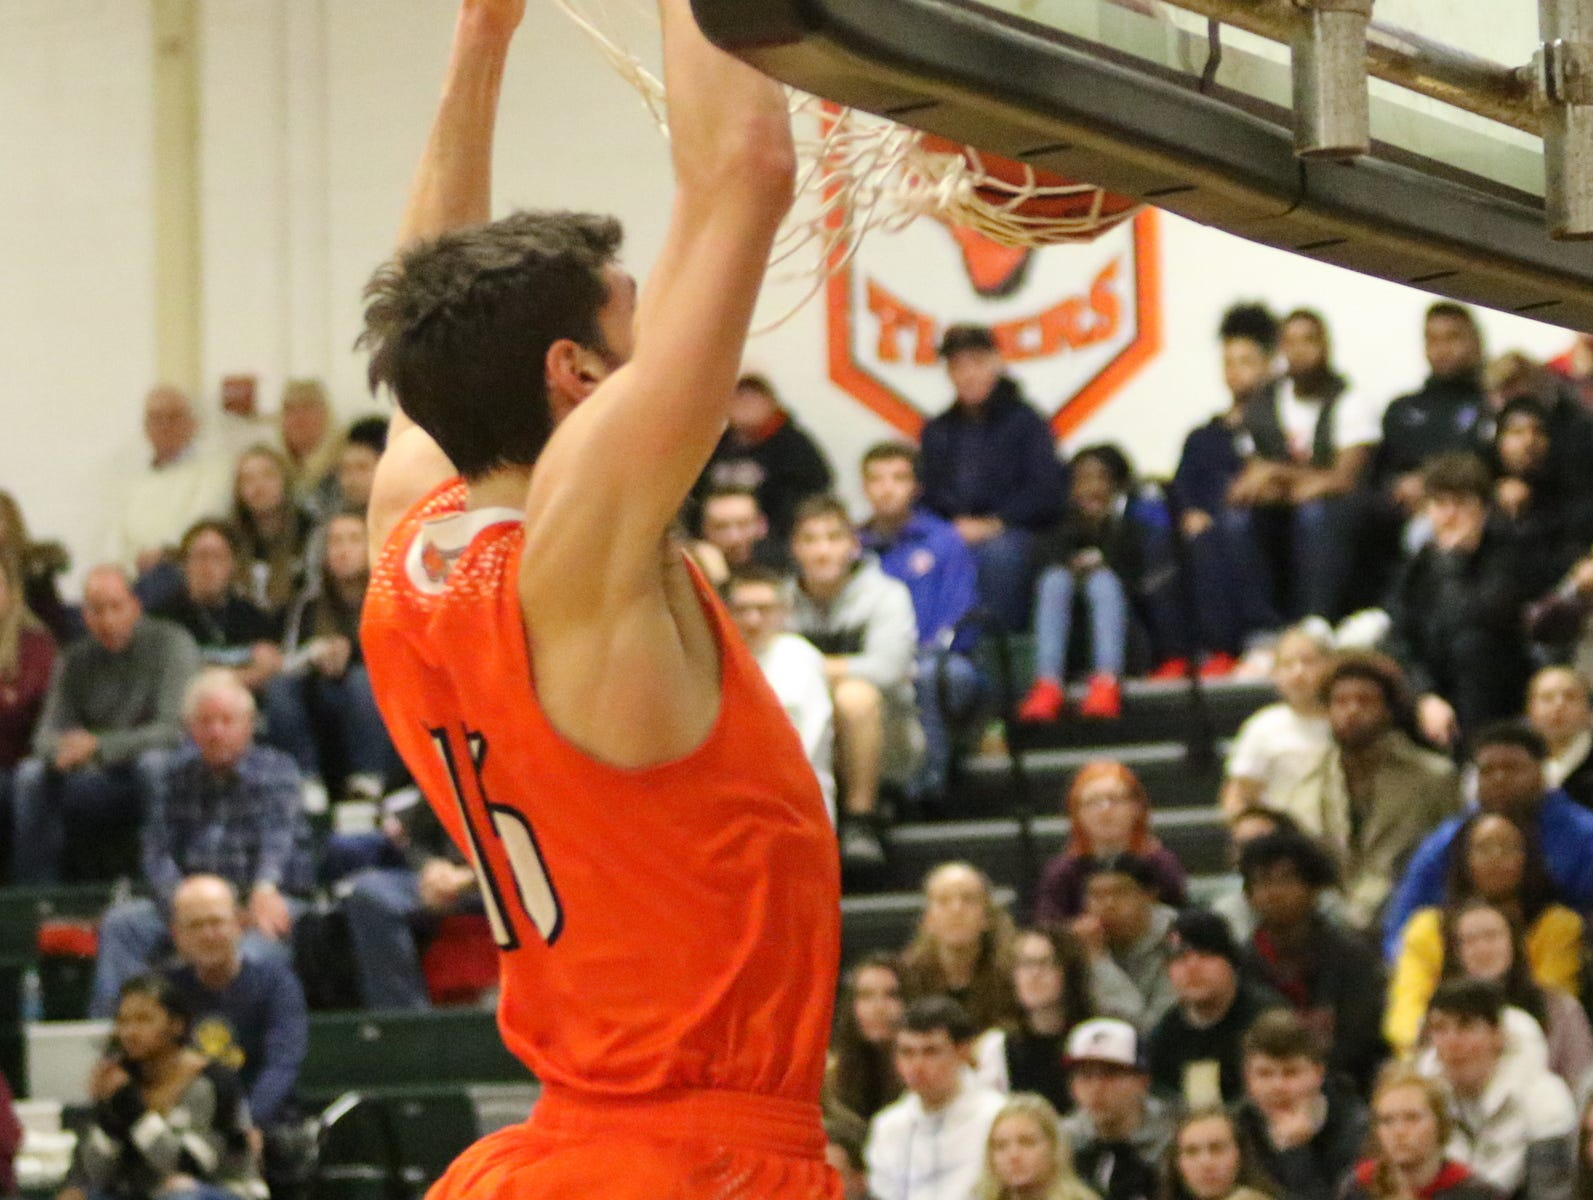 Greater Latrobe was a 71-50 winner over Elmira in the boys National Division semifinals at the Josh Palmer Fund Elmira Holiday Inn Classic on Dec. 29, 2018 at Elmira High School.